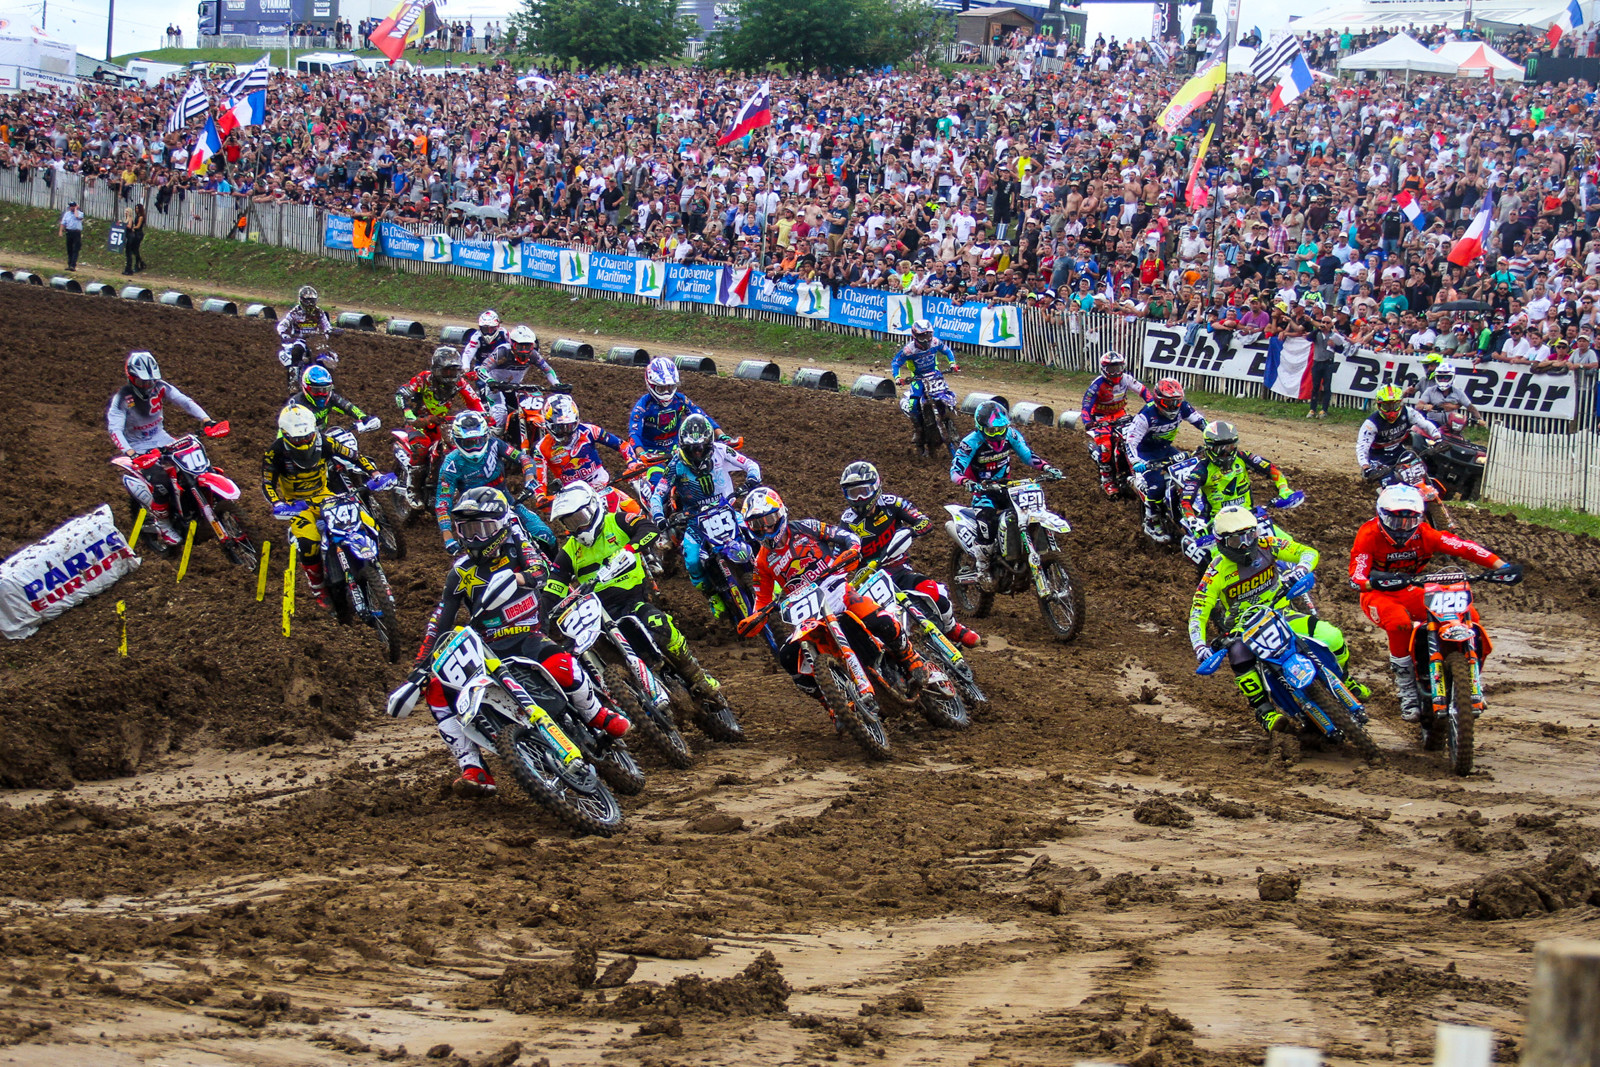 Thomas Covington cranked out a holeshot over the weekend and followed it up with a moto win...then a third in moto two for third overall.